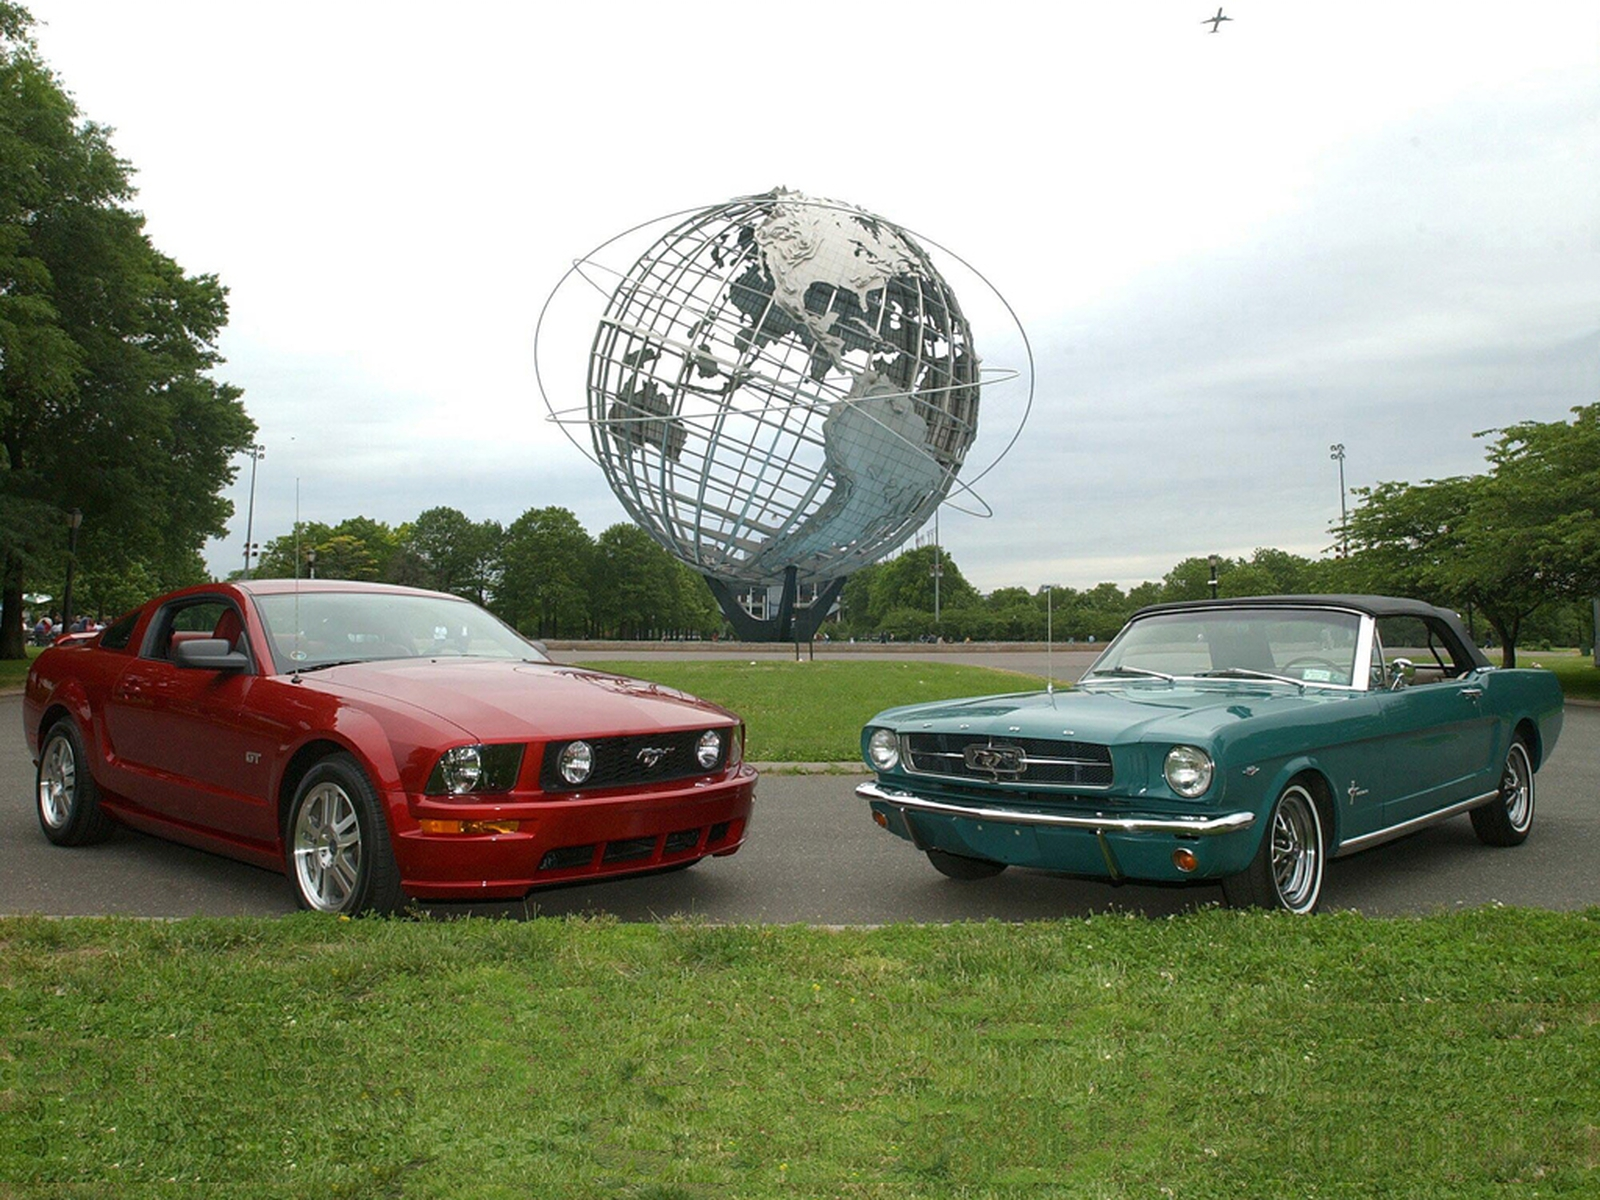 2005 and 1965 Mustangs